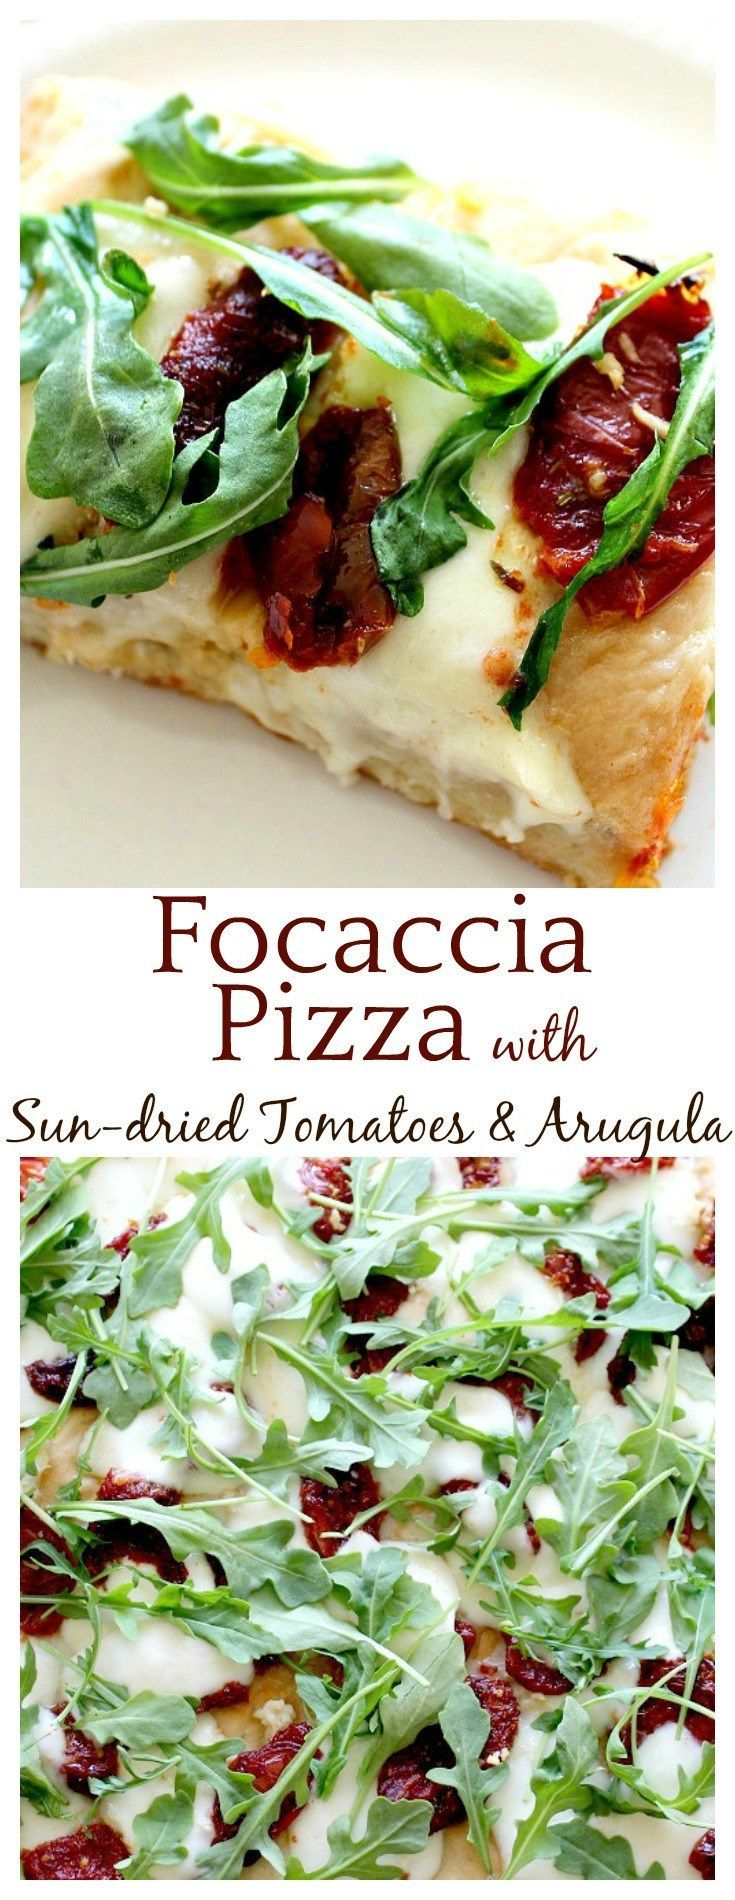 This focaccia pizza crust recipe is the perfect base for fresh mozzarella, sun-dried tomatoes, and arugula! Even the kids ate it and loved it!